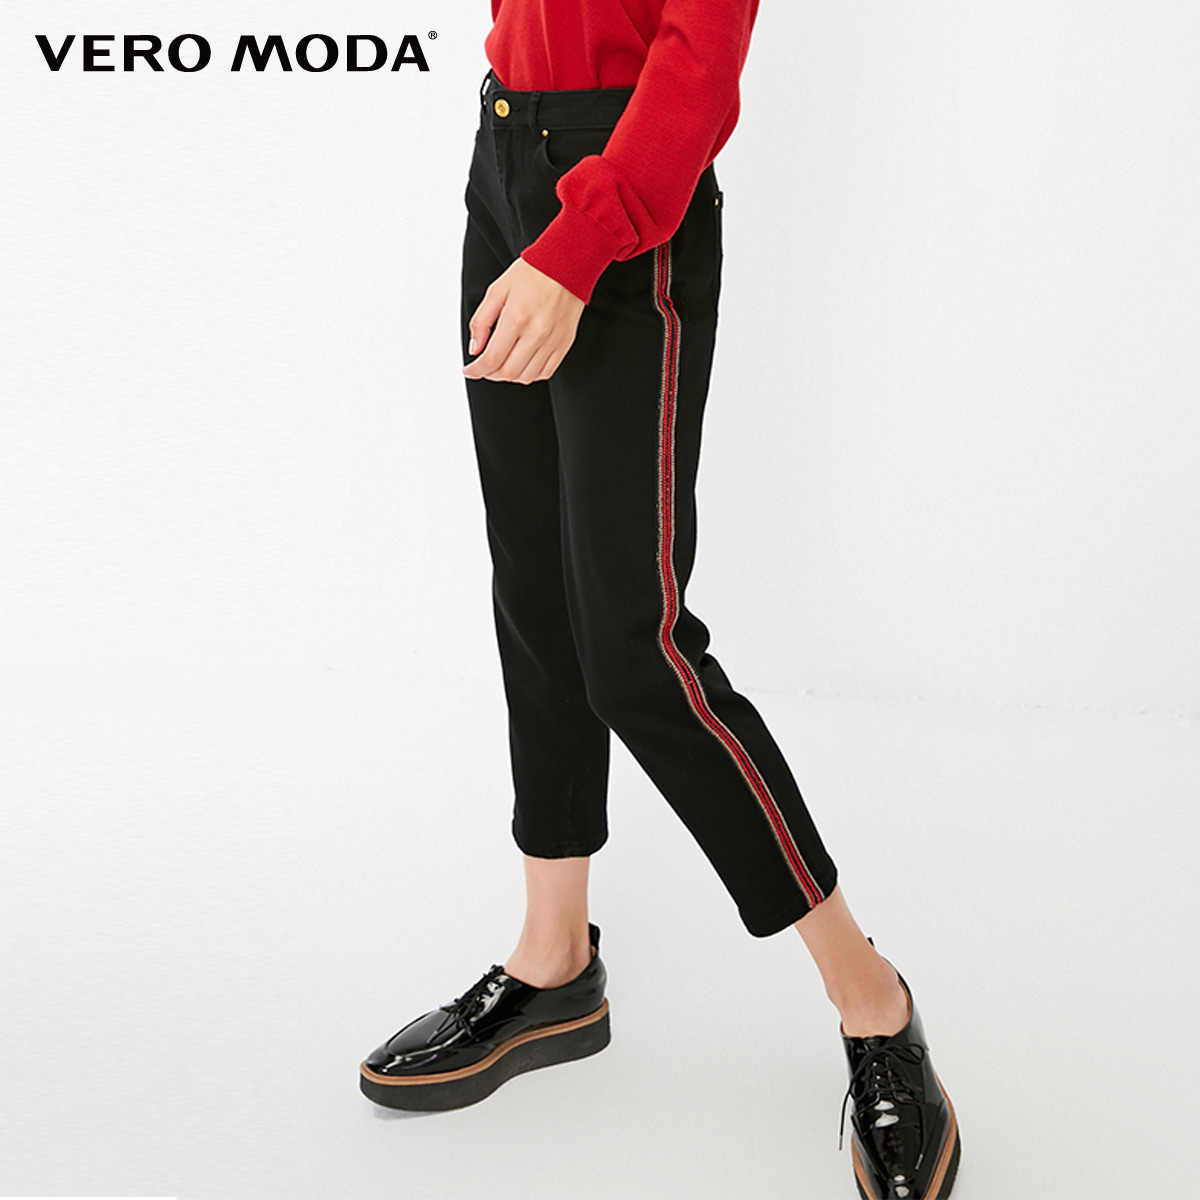 Vero Moda 2019 New Arrivals BF Style Side Strims Straight Fit Washed Jeans | 318349577